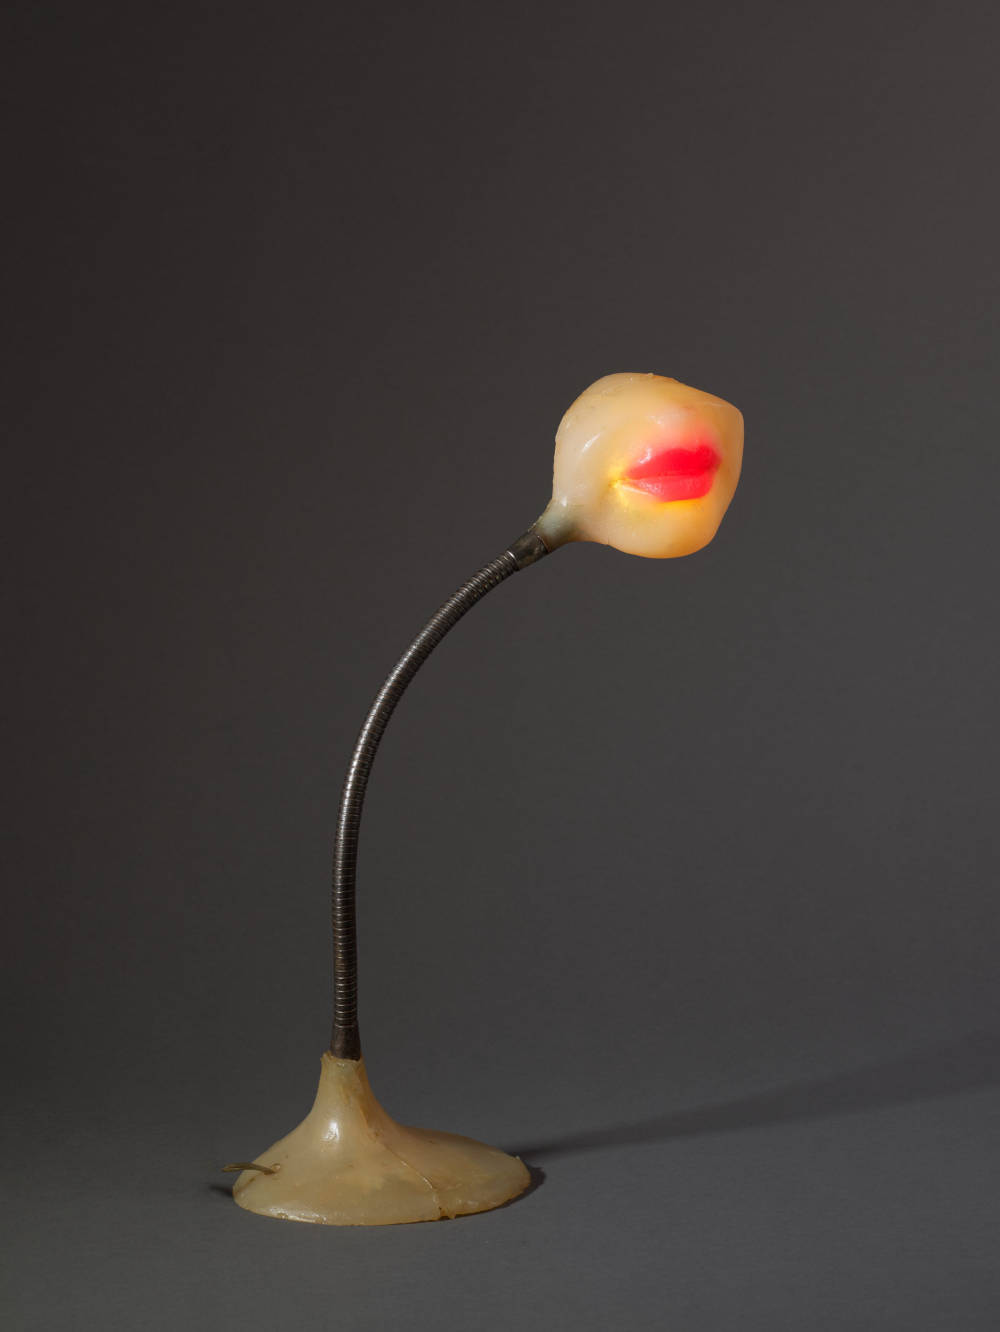 Lampe-bouche (Illuminated Lips)